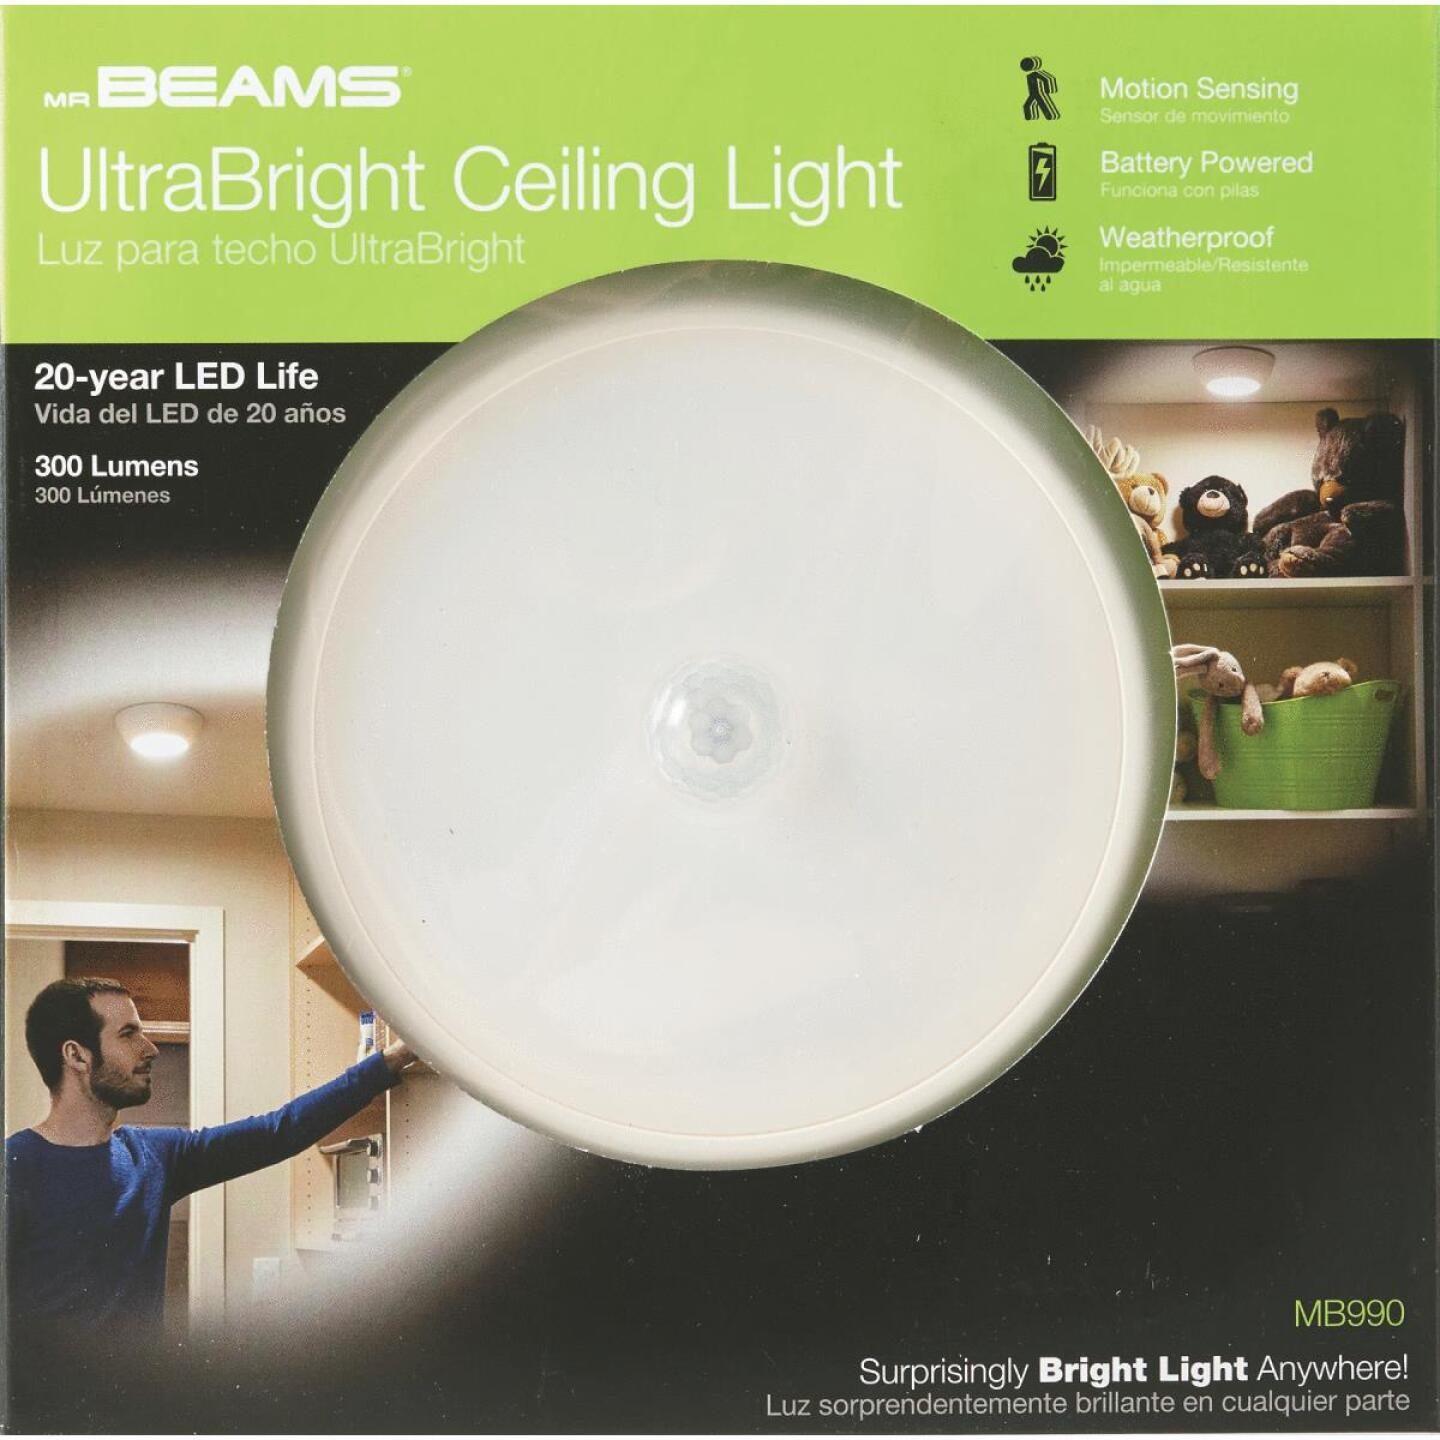 Mr. Beams UltraBright 300-Lumen White Motion Sensing/Dusk-To-Dawn Outdoor Battery Operated LED Ceiling Light Fixture Image 2